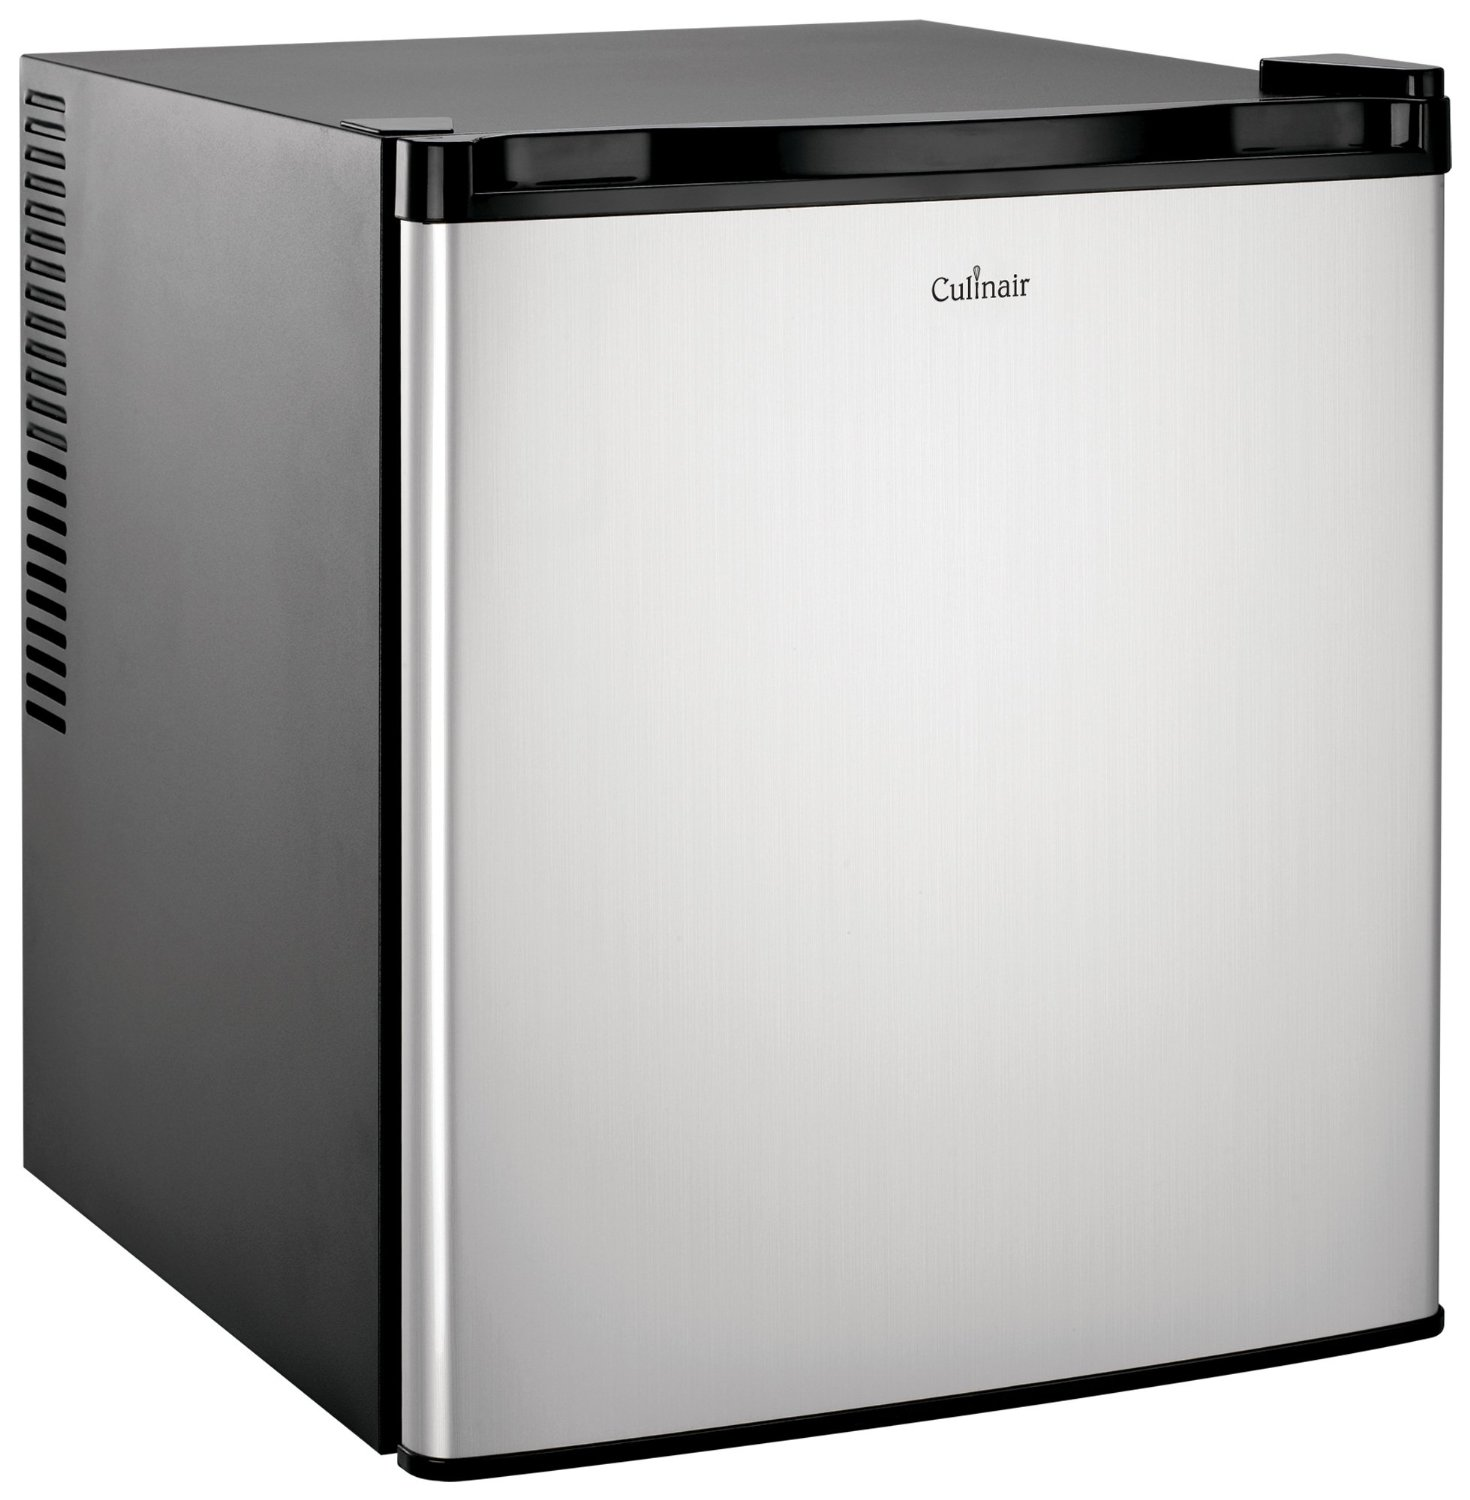 Home for the home marshall fridge - Culinair Af100s Compact Refrigerator